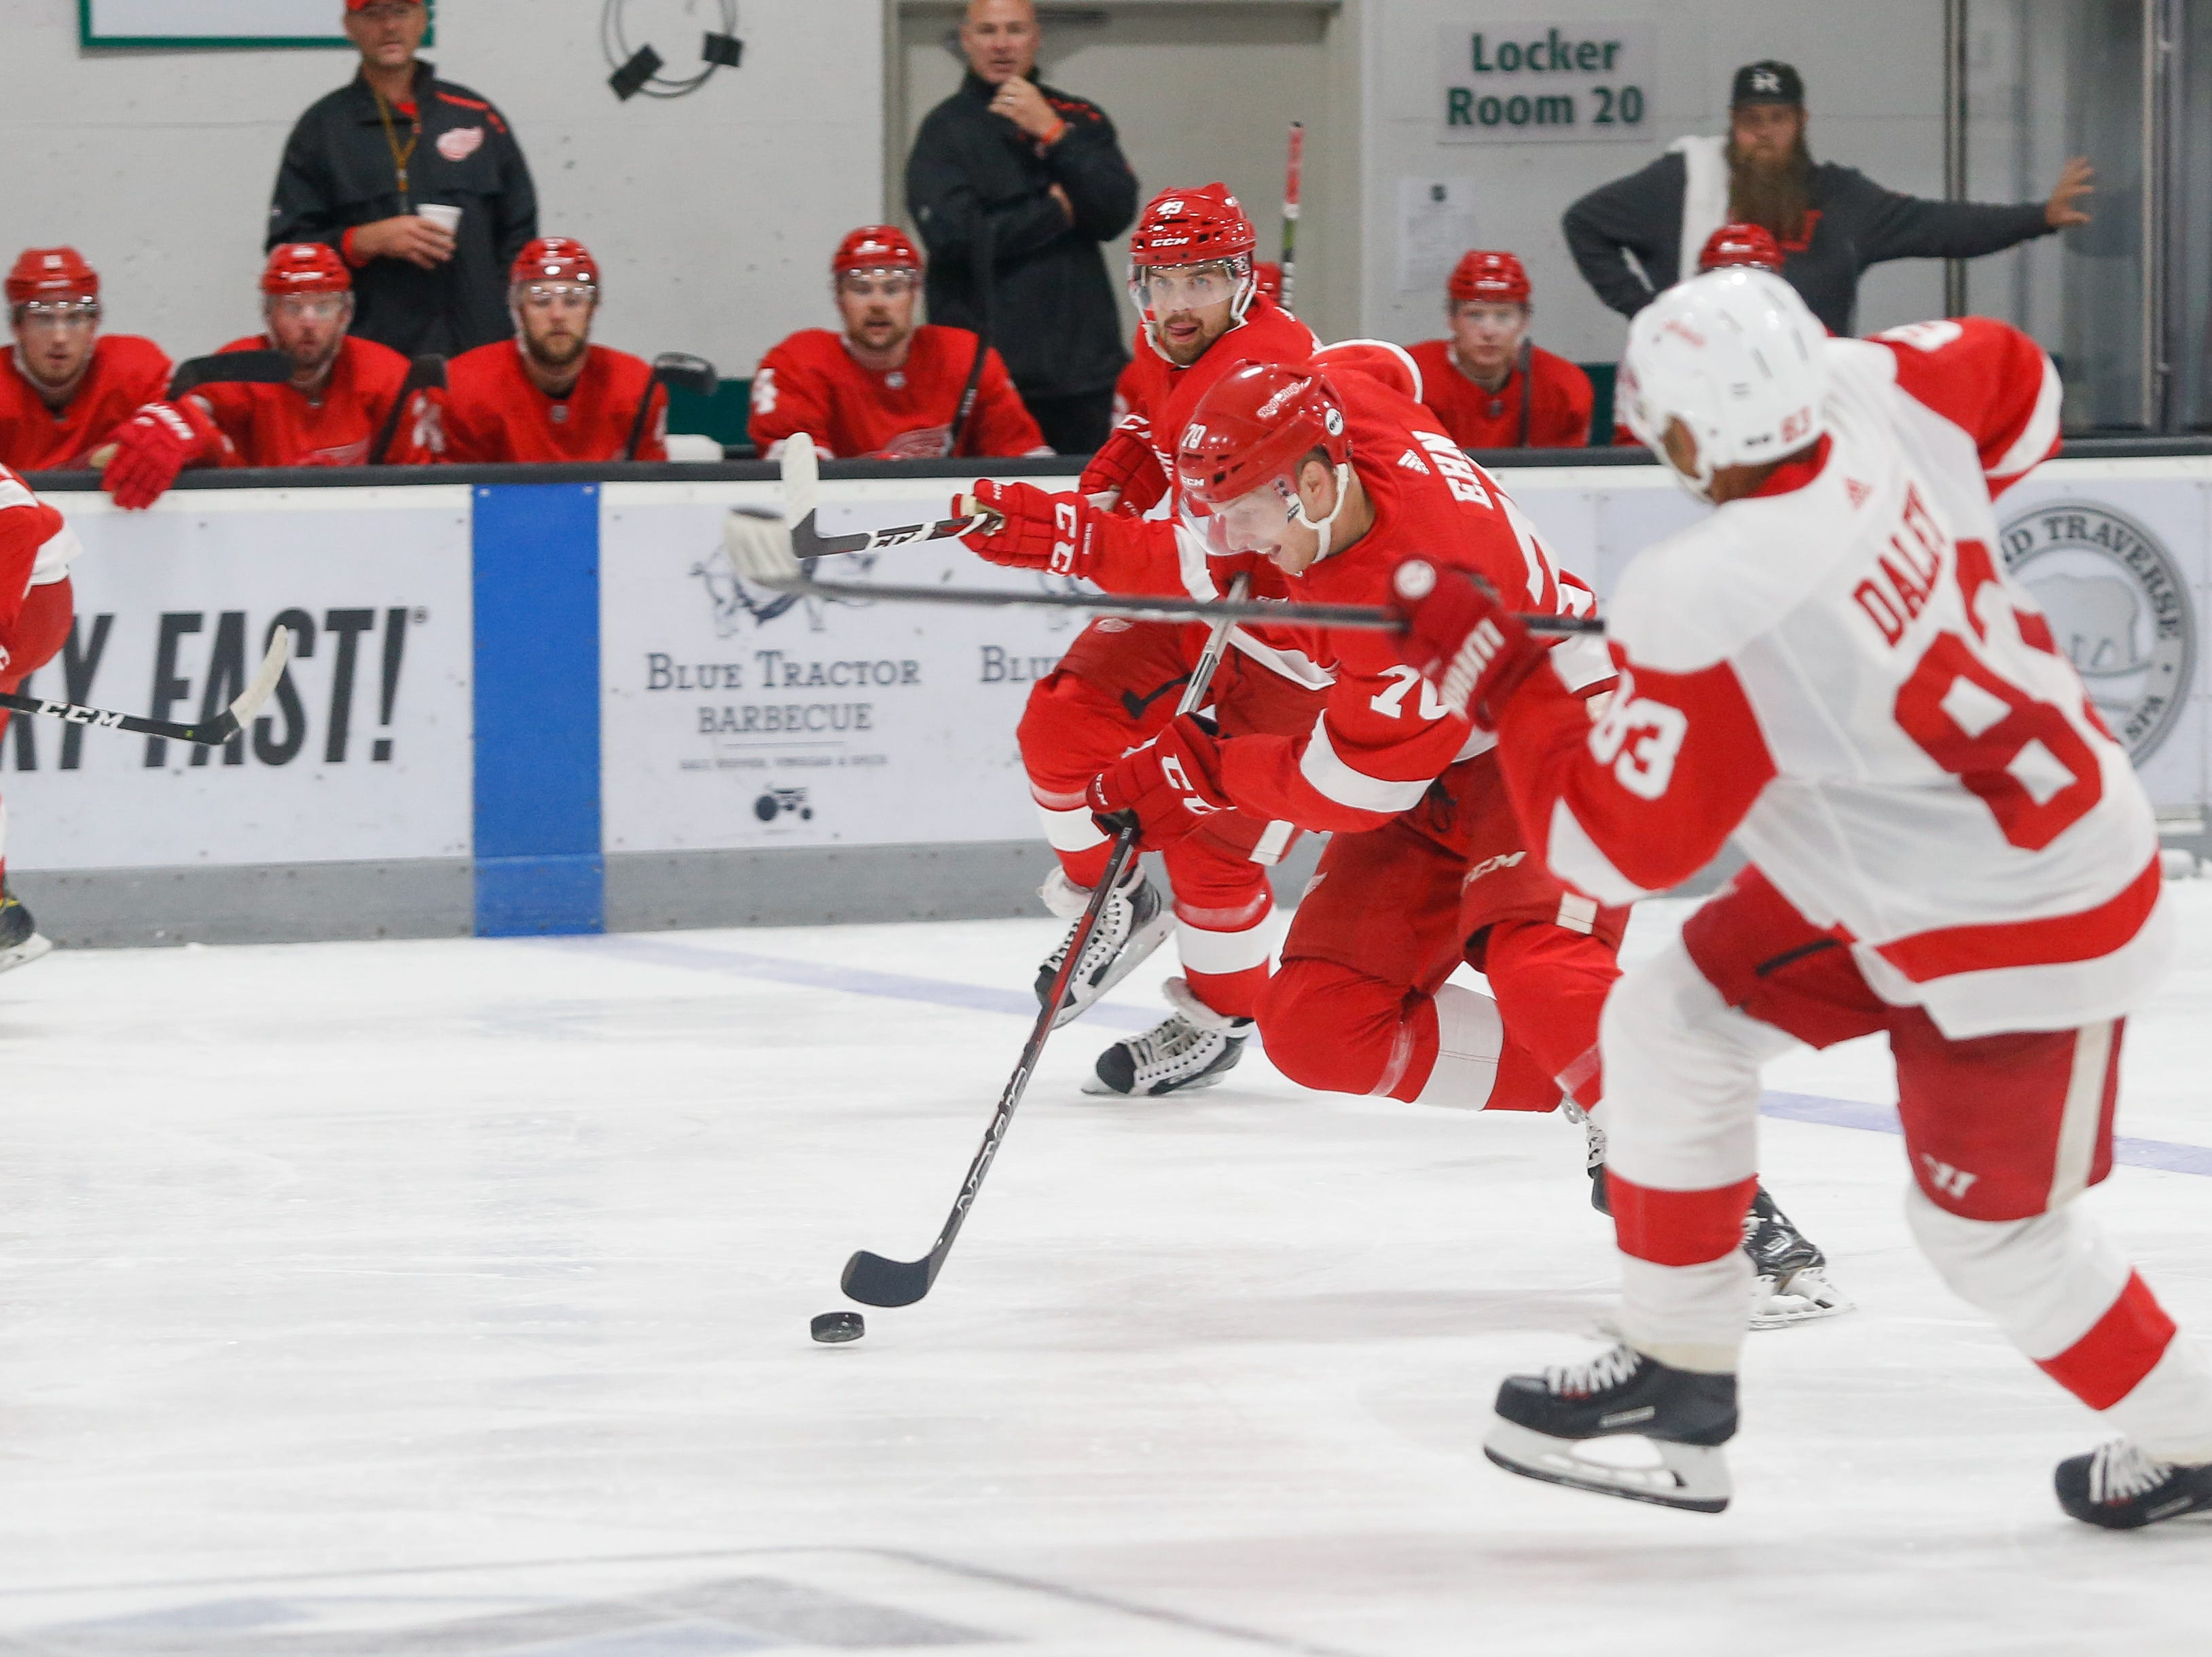 Christoffer Ehn (70) pushes the puck out of the Red zone as teammate Axel Holmstrom (49) trails and Trevor Dale (83) defends.